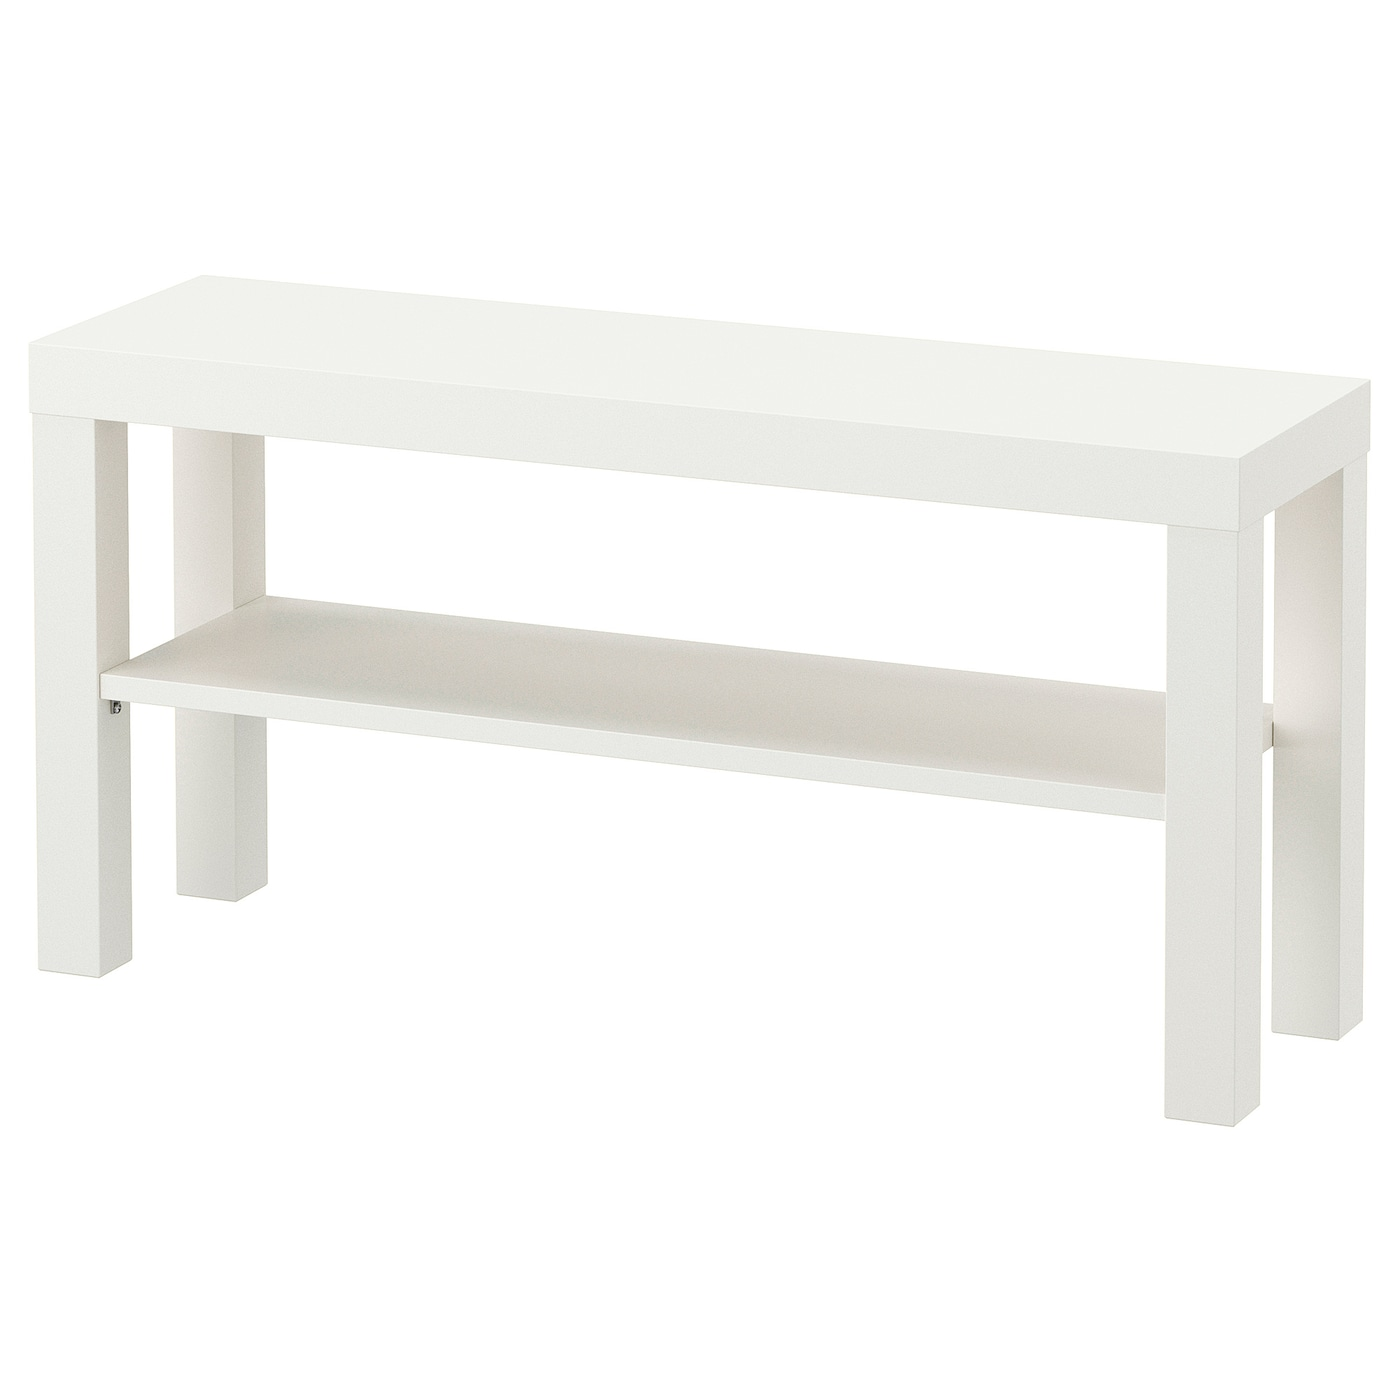 Lack Tv Unit White 35 3 8x10 1 4x17